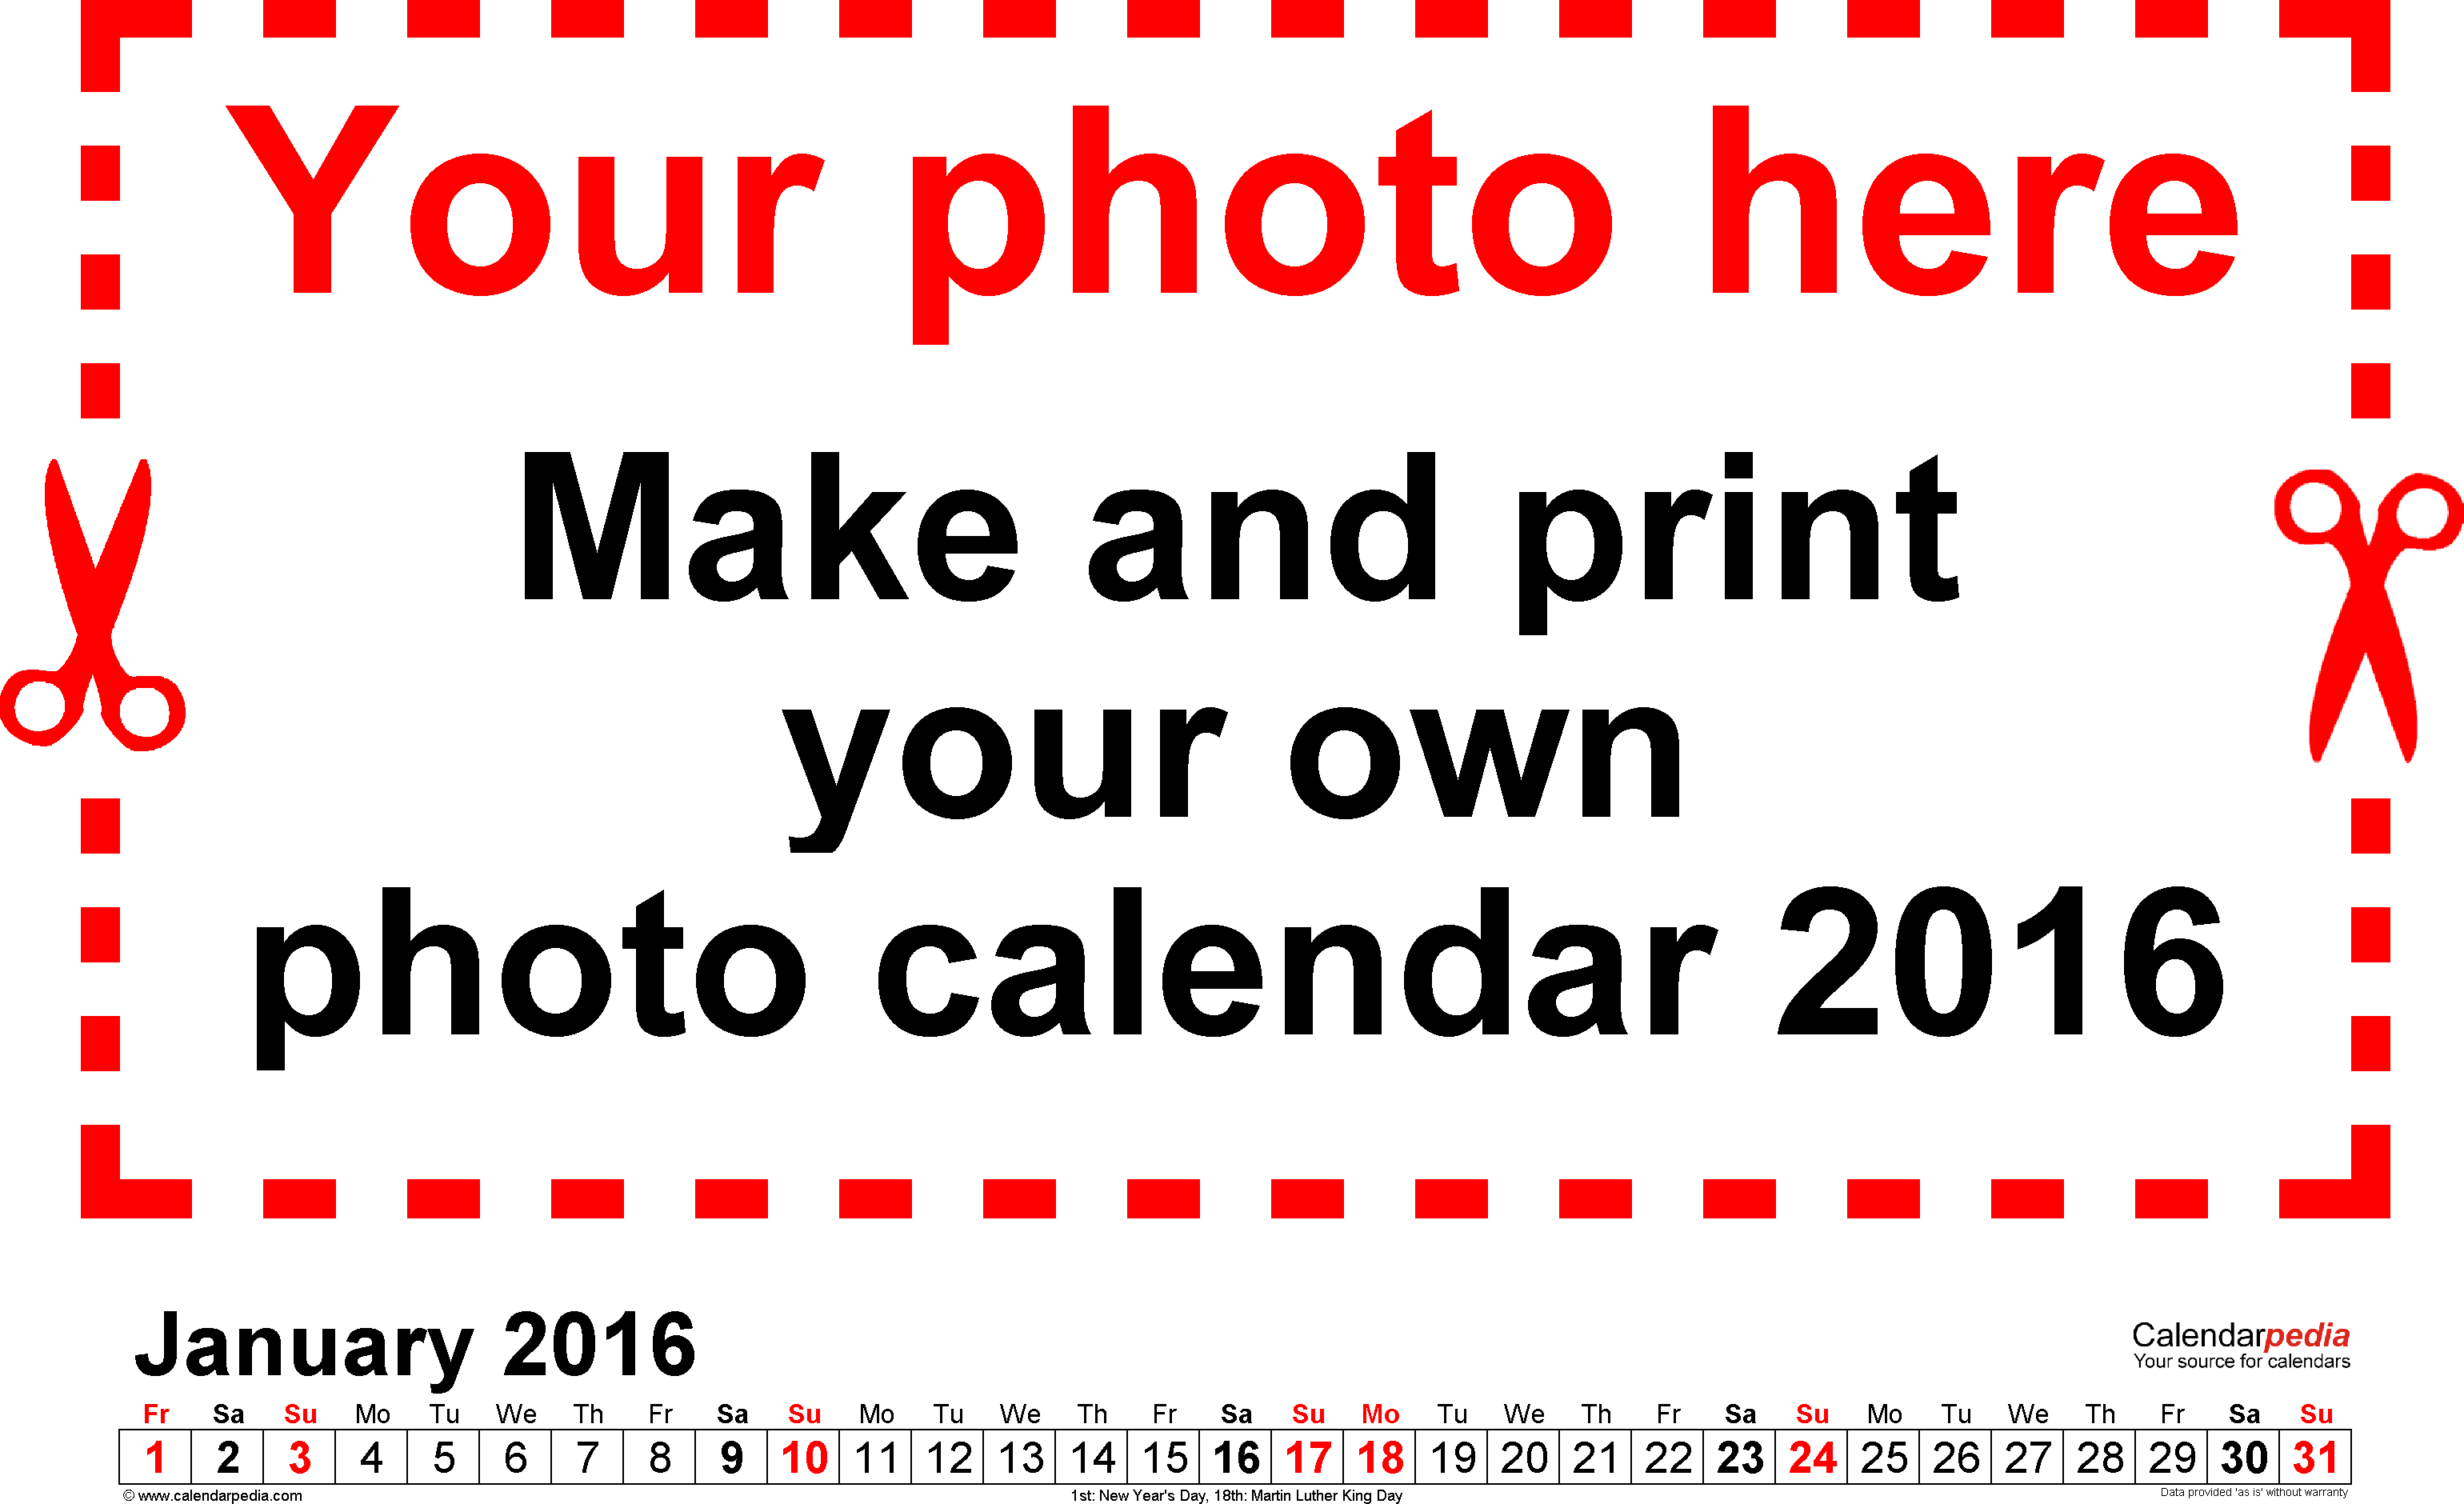 Template 5: Photo calendar 2016 for Excel, 12 pages, landscape format